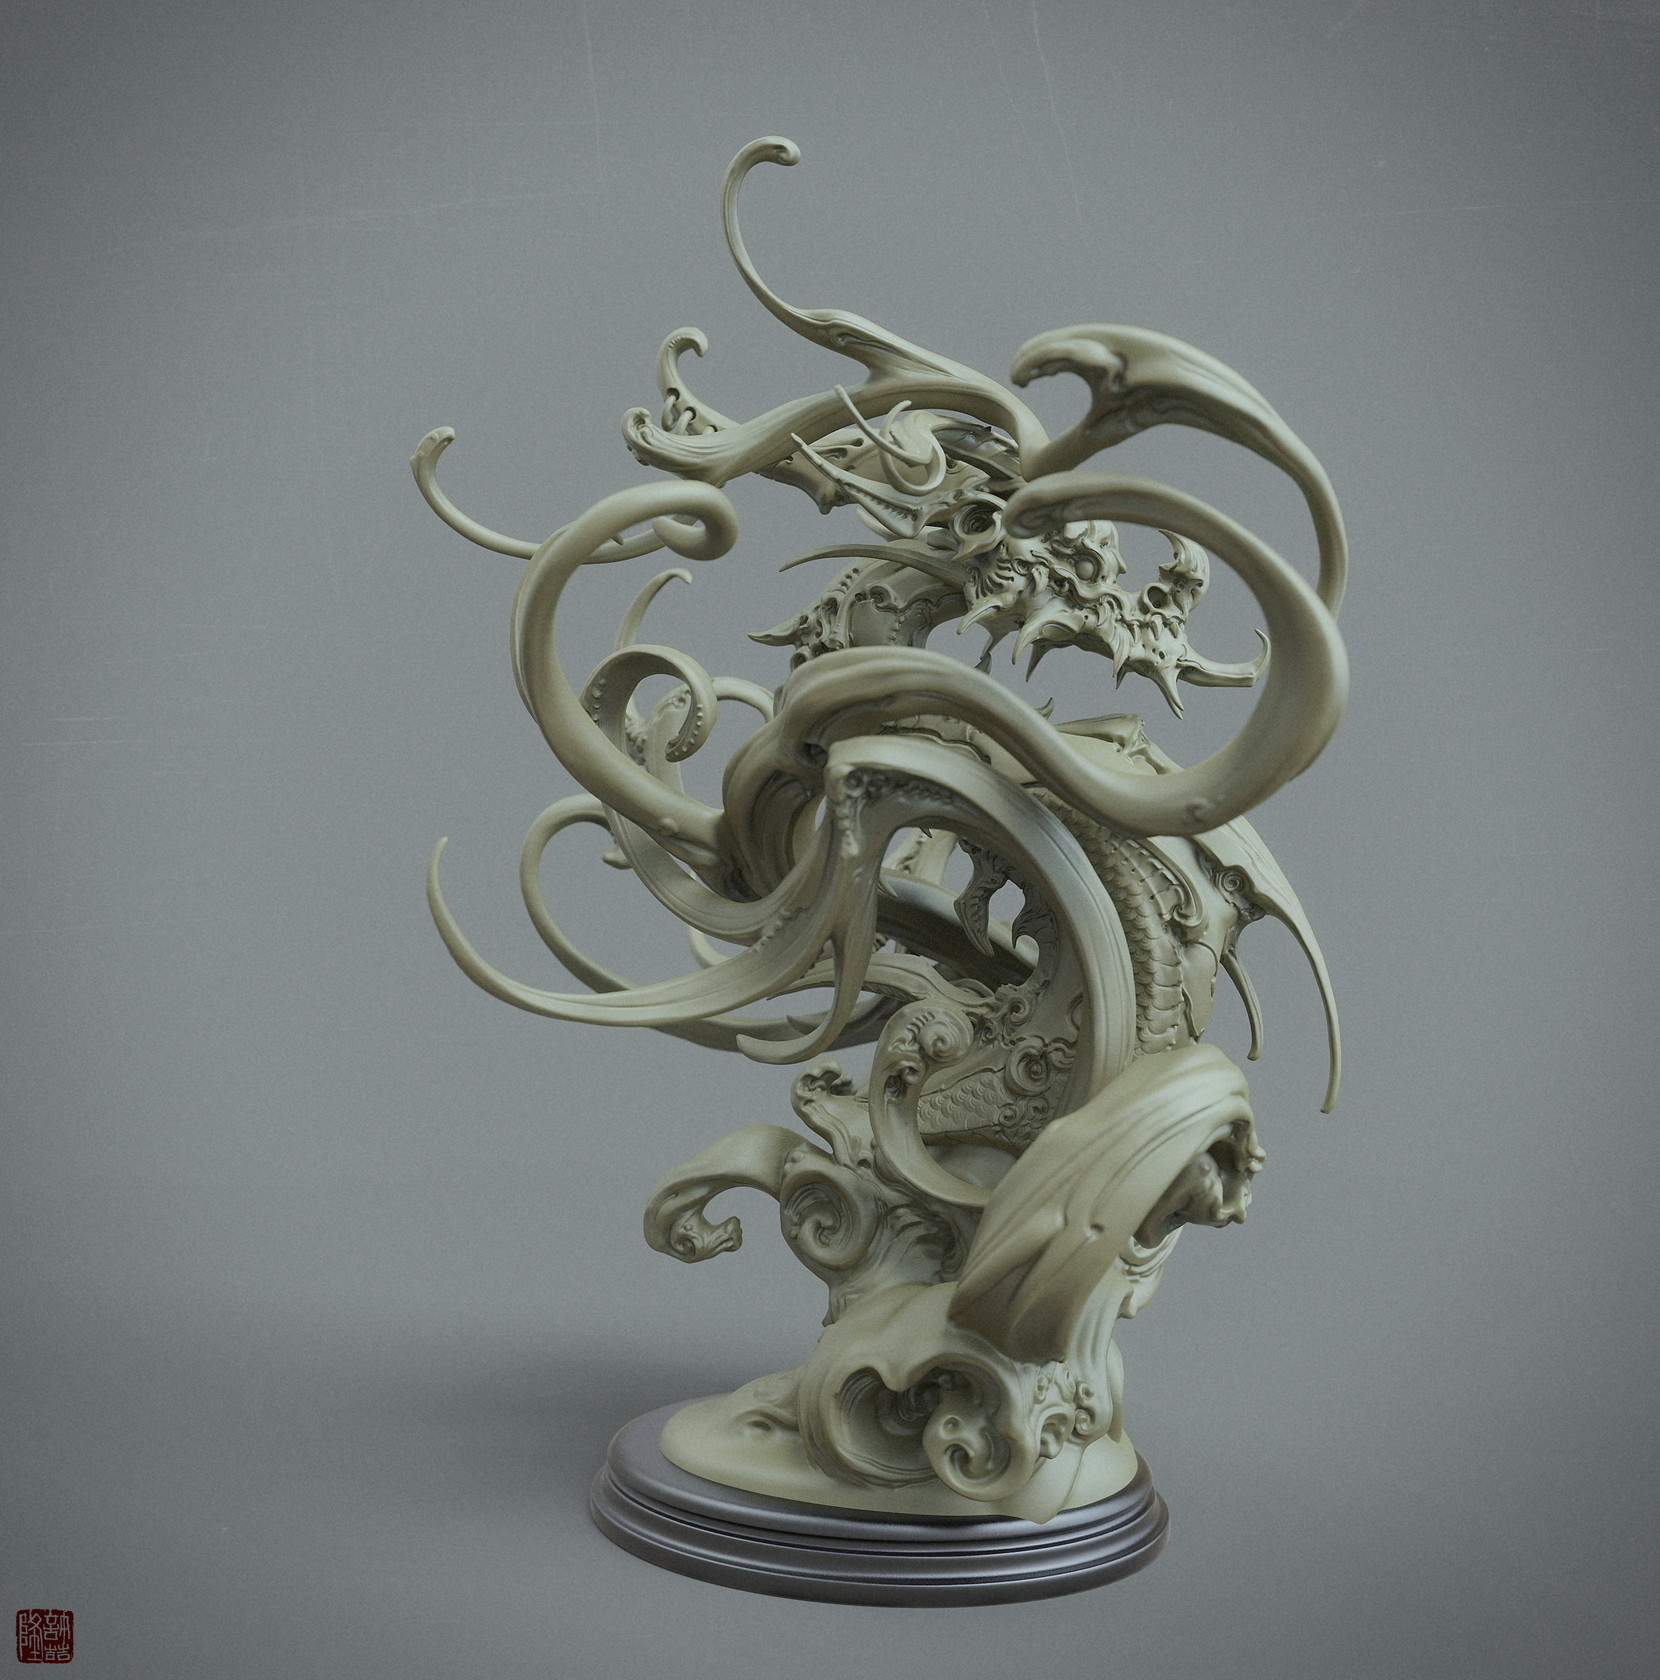 Zhelong xu keyshot render01 websize